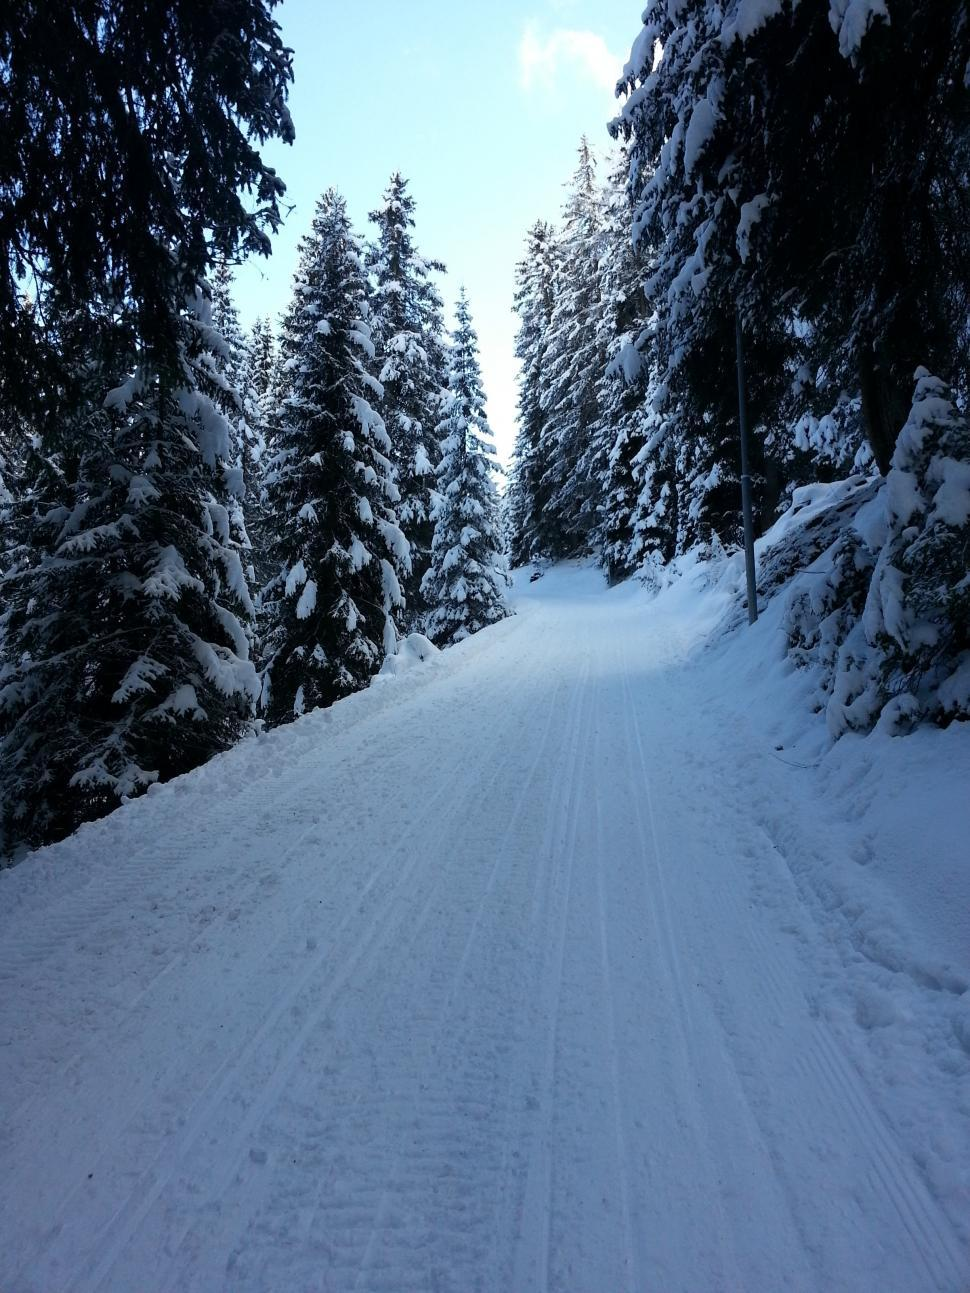 Download Free Stock HD Photo of Snowy mountain narrow path Online